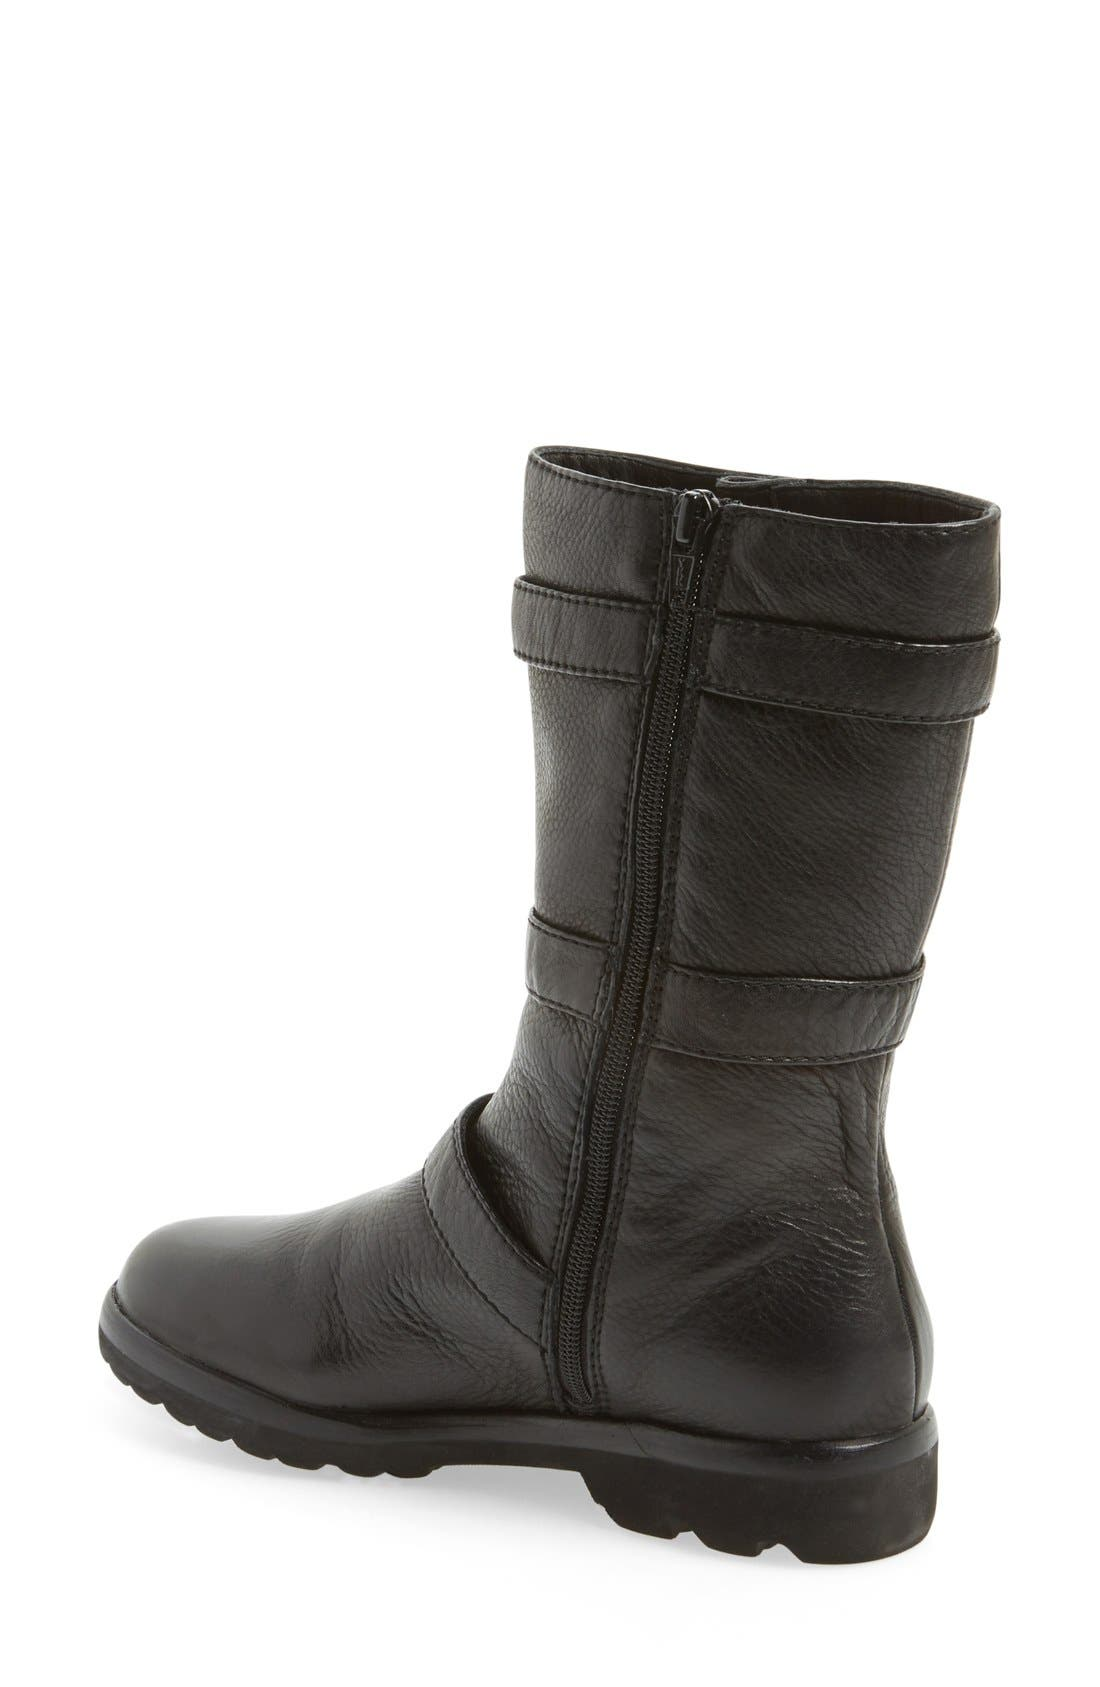 L'Amour Des Pieds 'Racey' Belted Mid Boot,                             Alternate thumbnail 3, color,                             001